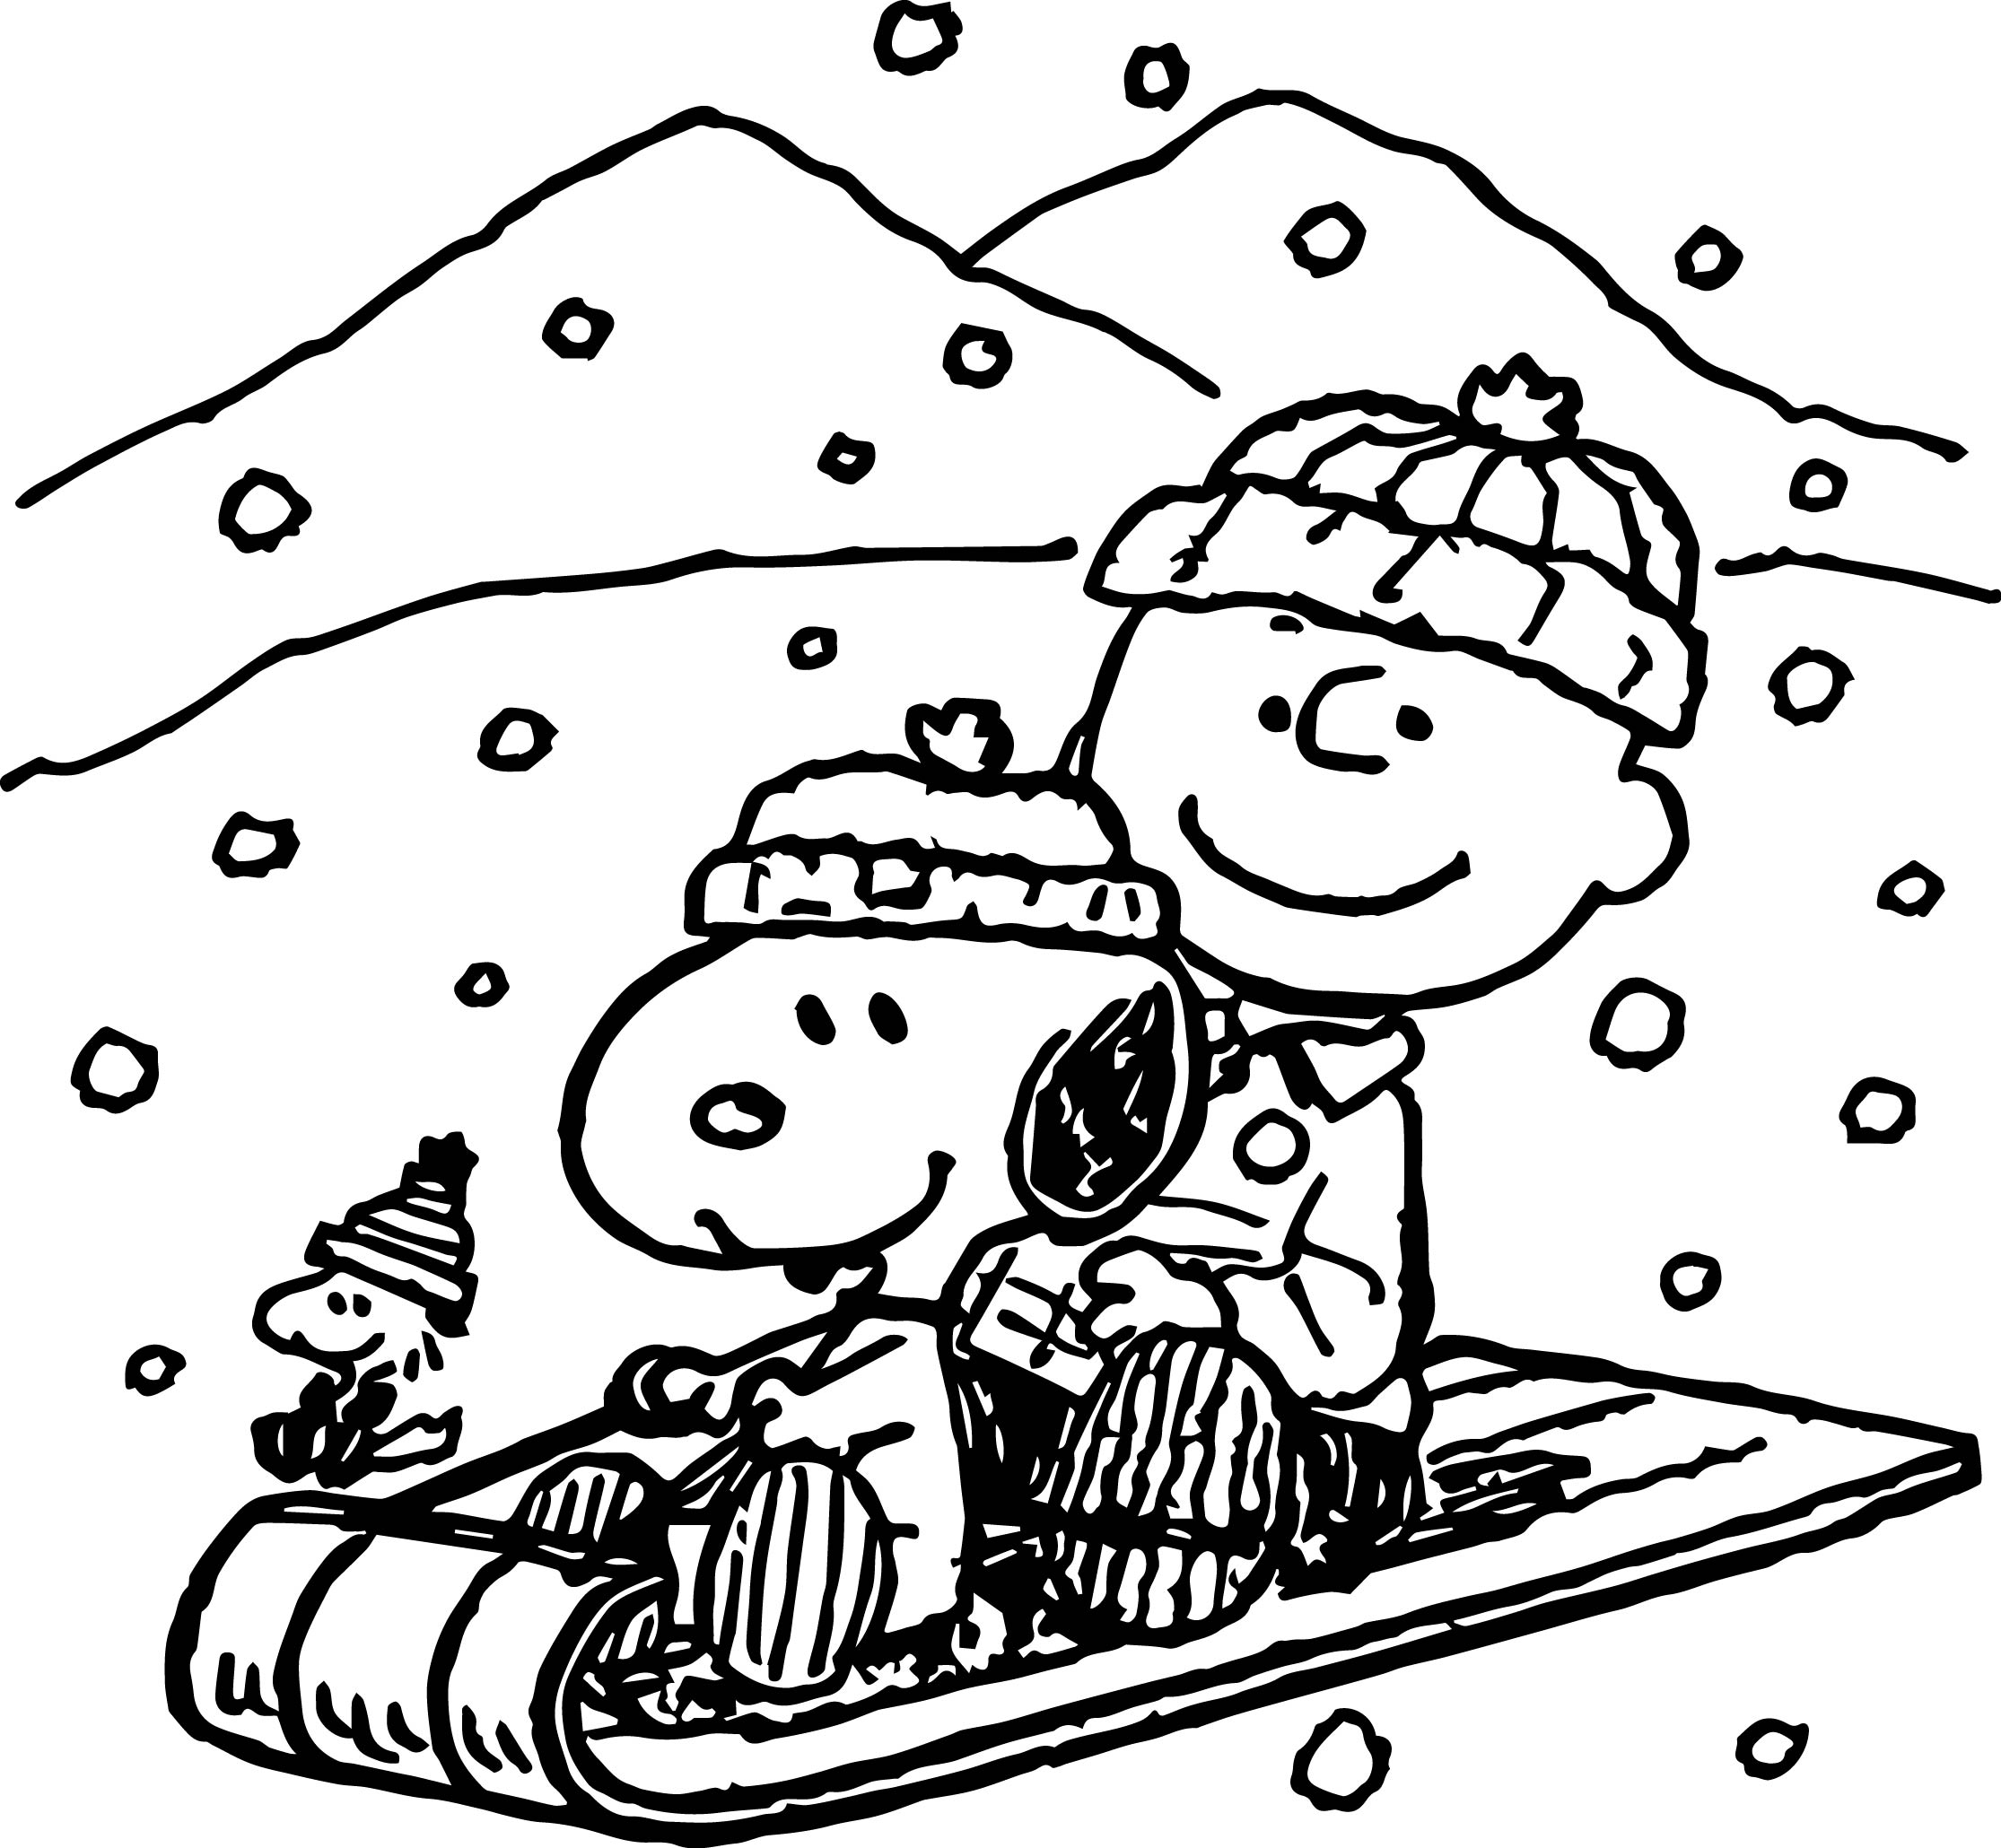 snoopy winter coloring page - Winter Coloring Pages Free